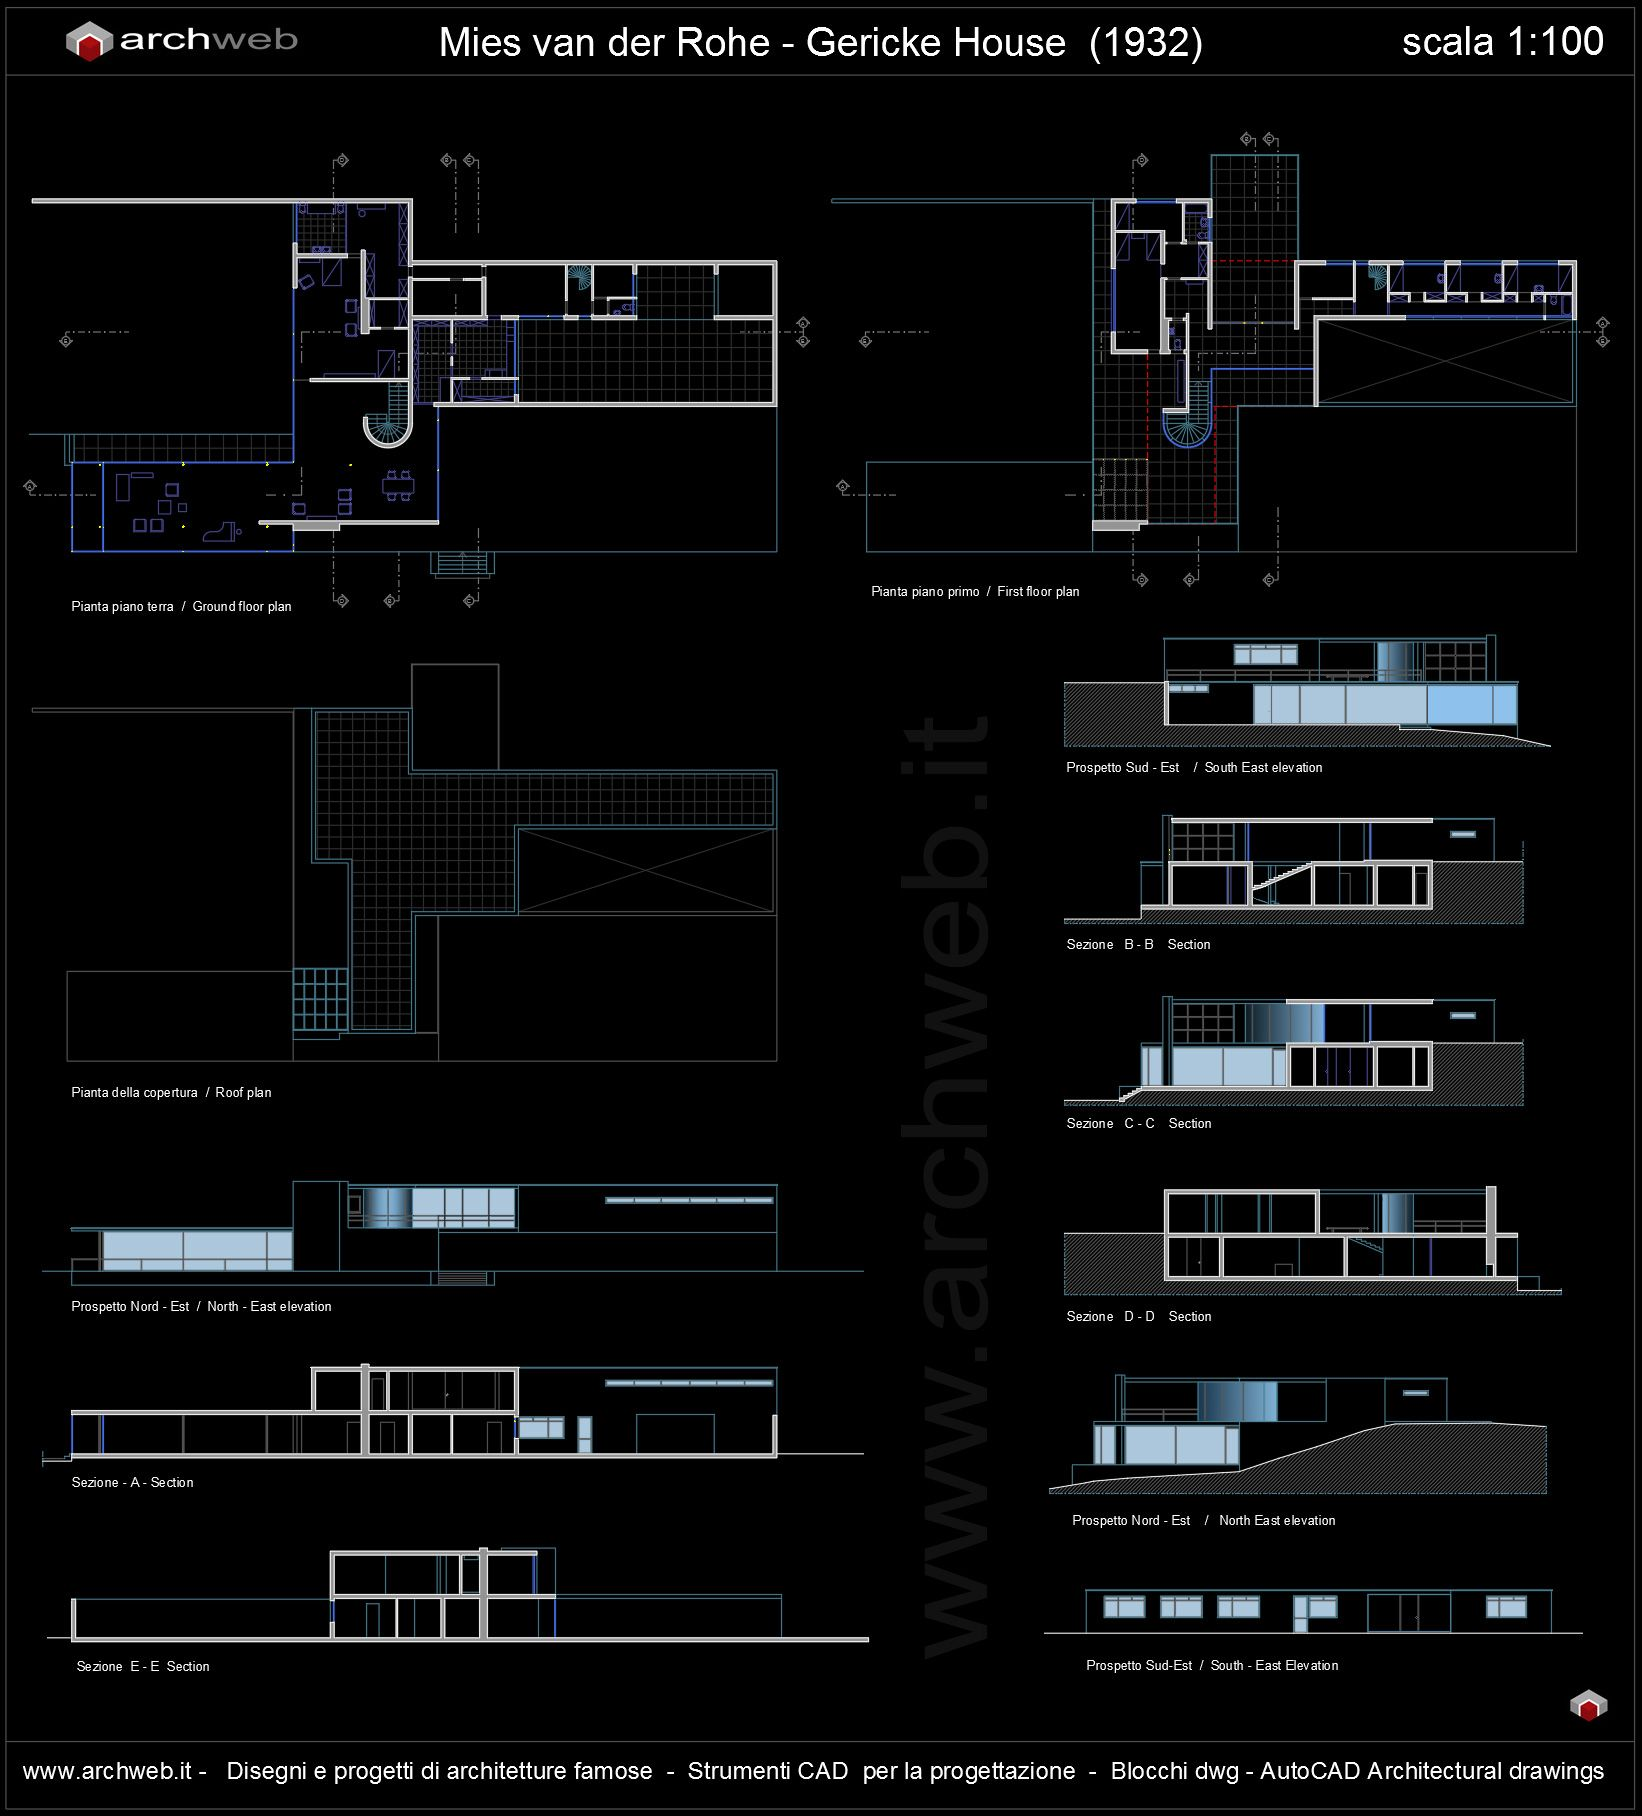 Gericke House Autocad Dwg Iconic Houses Pinterest # Muebles Mies Van Der Rohe Autocad